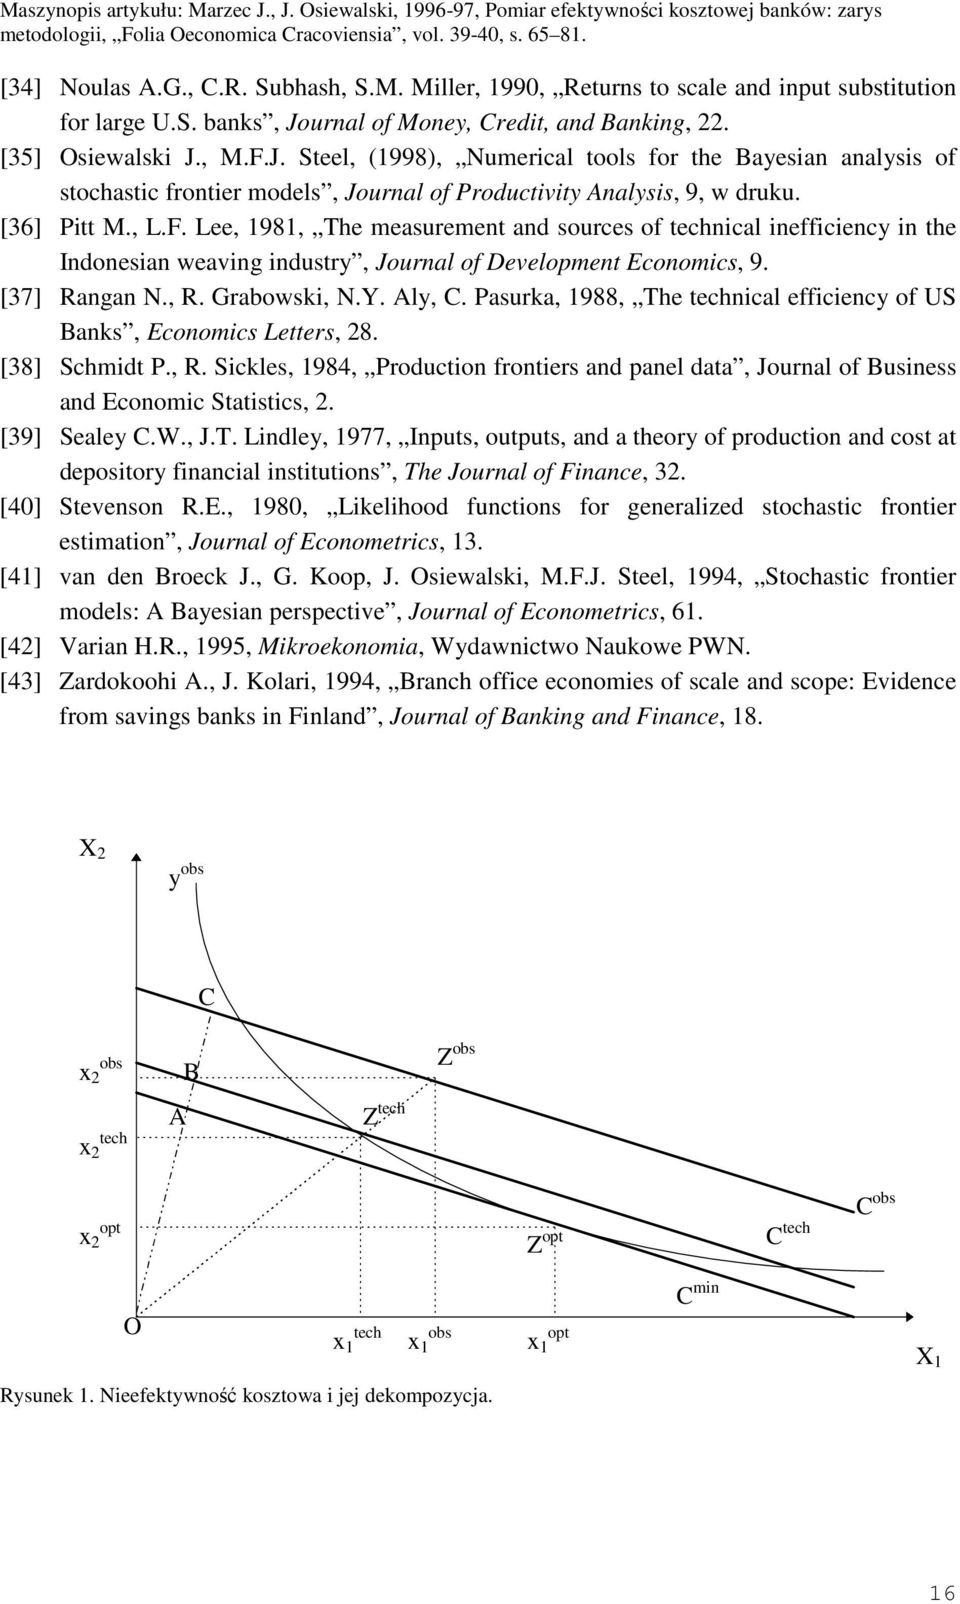 , L.F. Lee, 98, Te measurement and sources of tecncal neffcency n te Indonesan weavng ndustry, Journal of Development Economcs, 9. [37] Rangan N., R. rabowsk, N.Y. Aly, C.